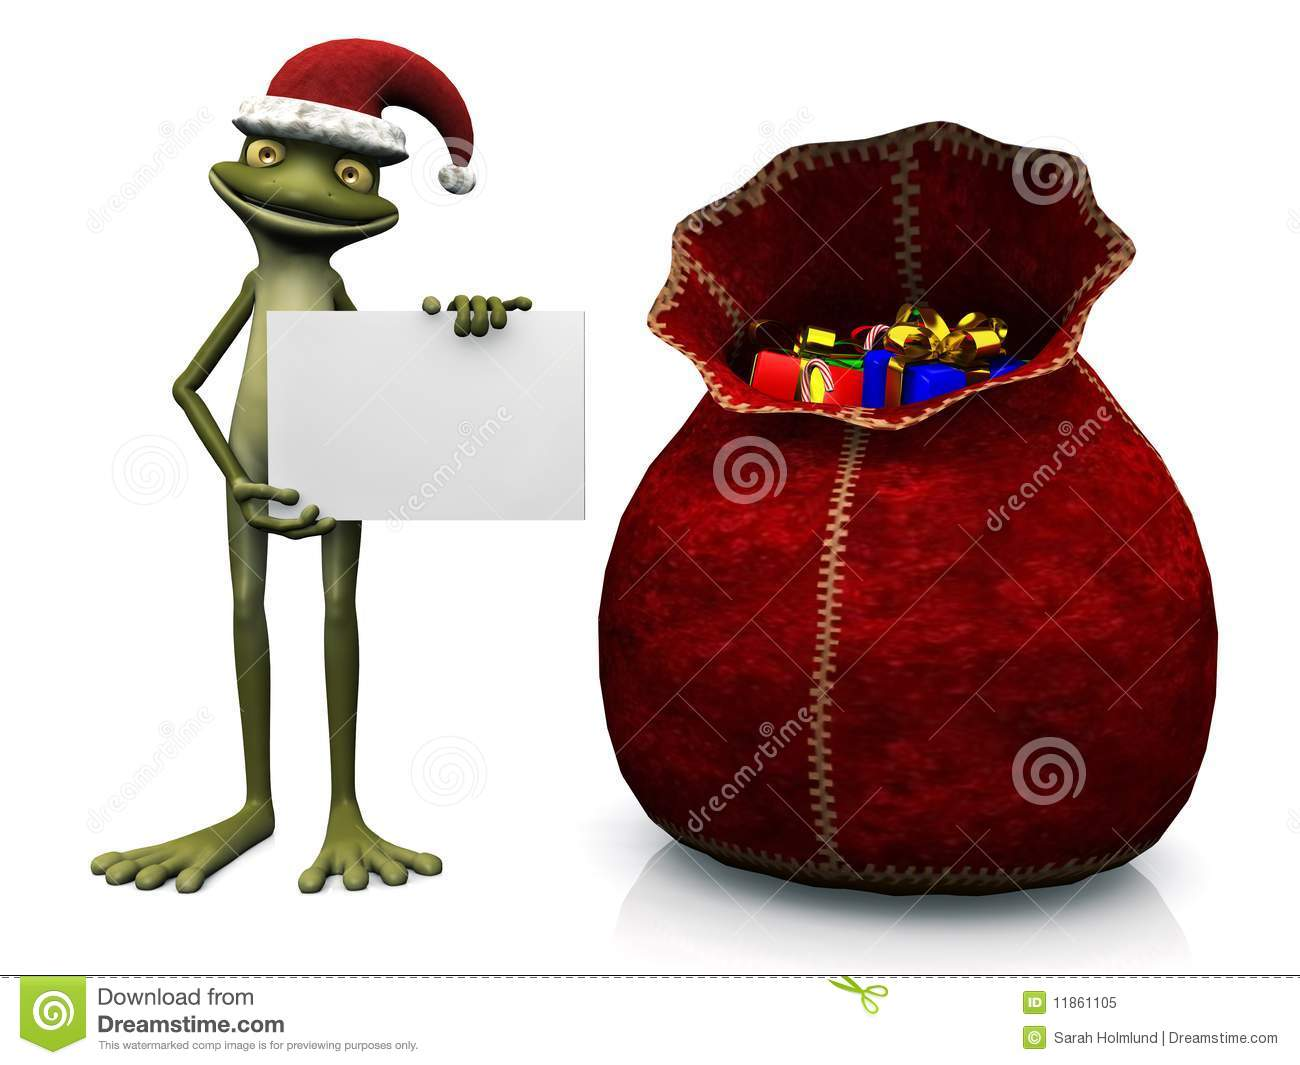 Cartoon frog wearing Santa hat, holding blank sign